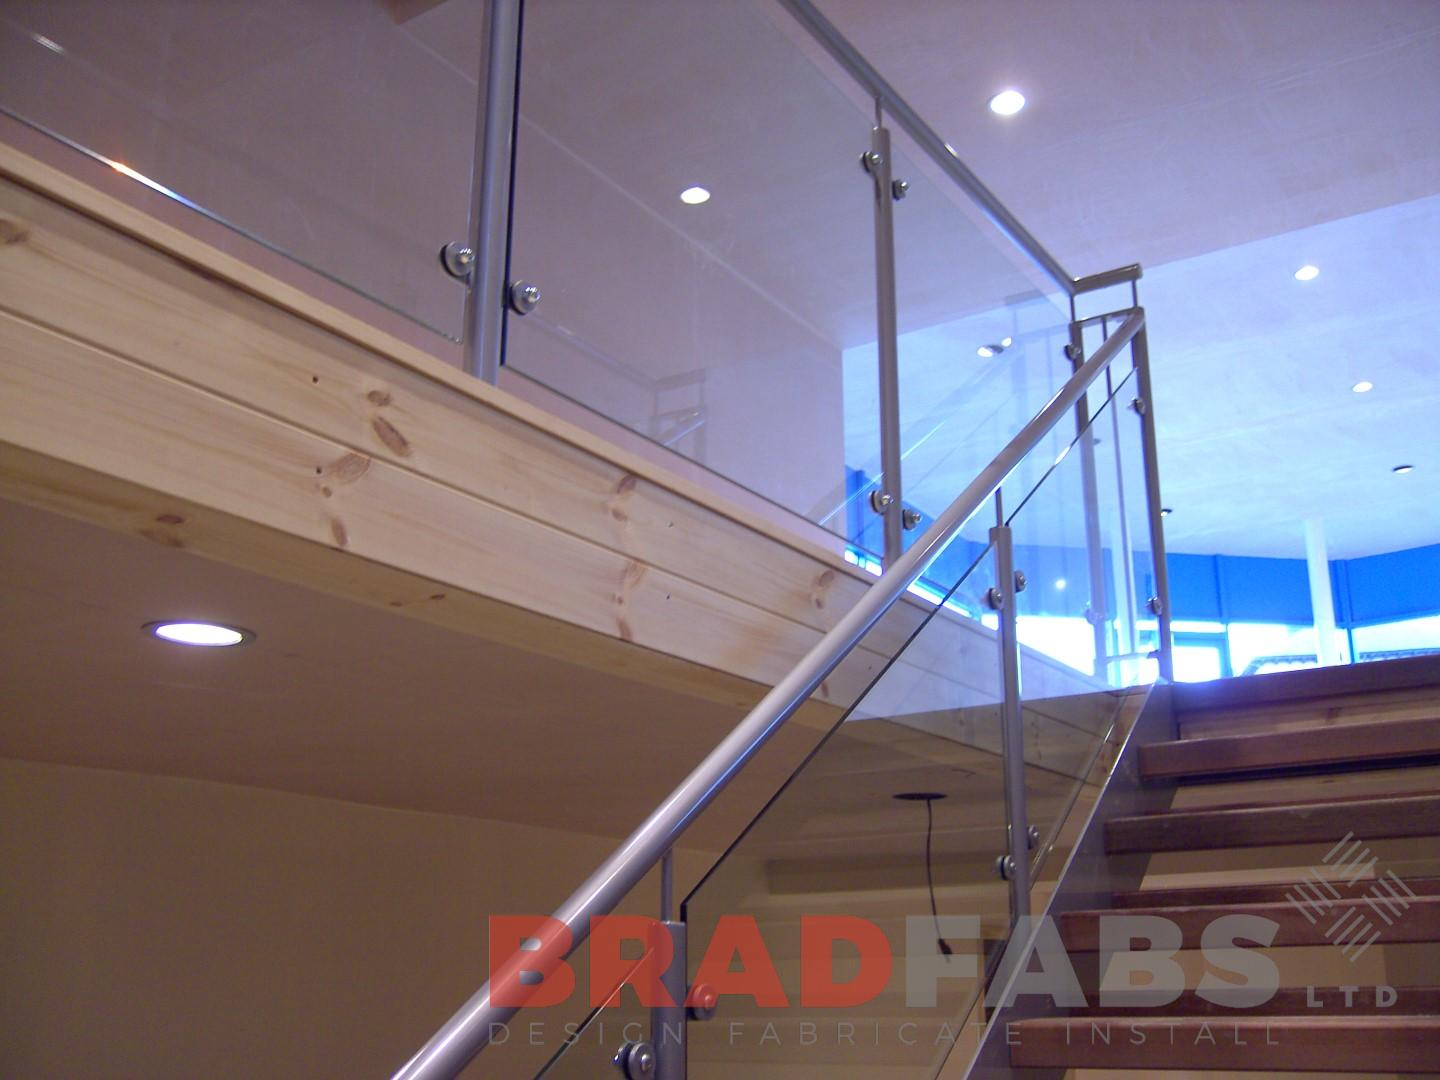 stainless steel balustrade glass infil panels